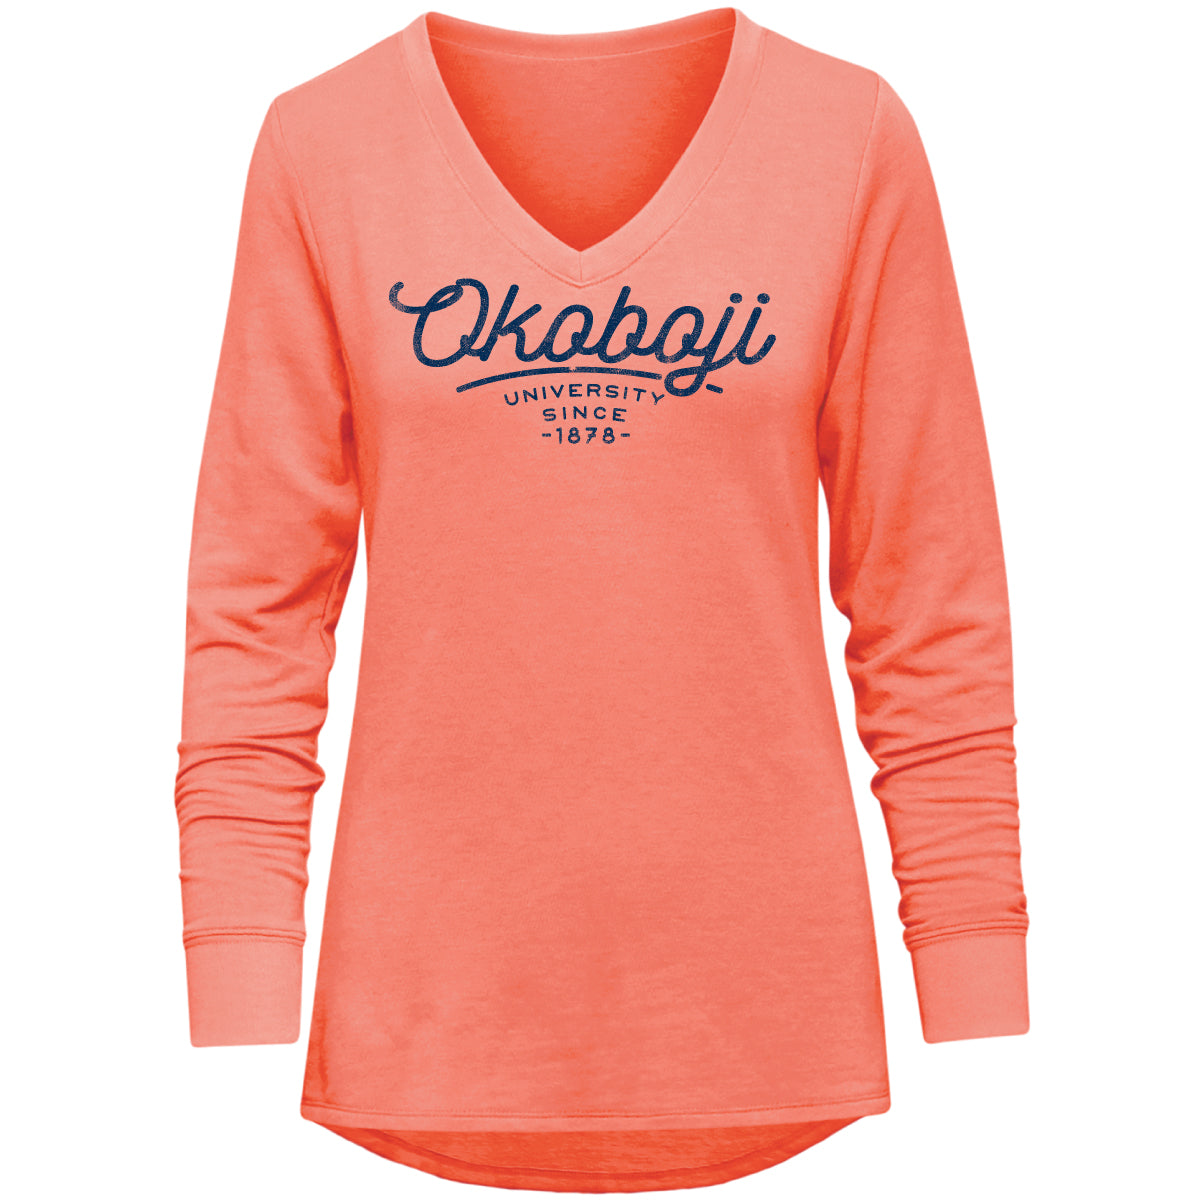 Ladies Relaxed V-Neck Okoboji Pullover